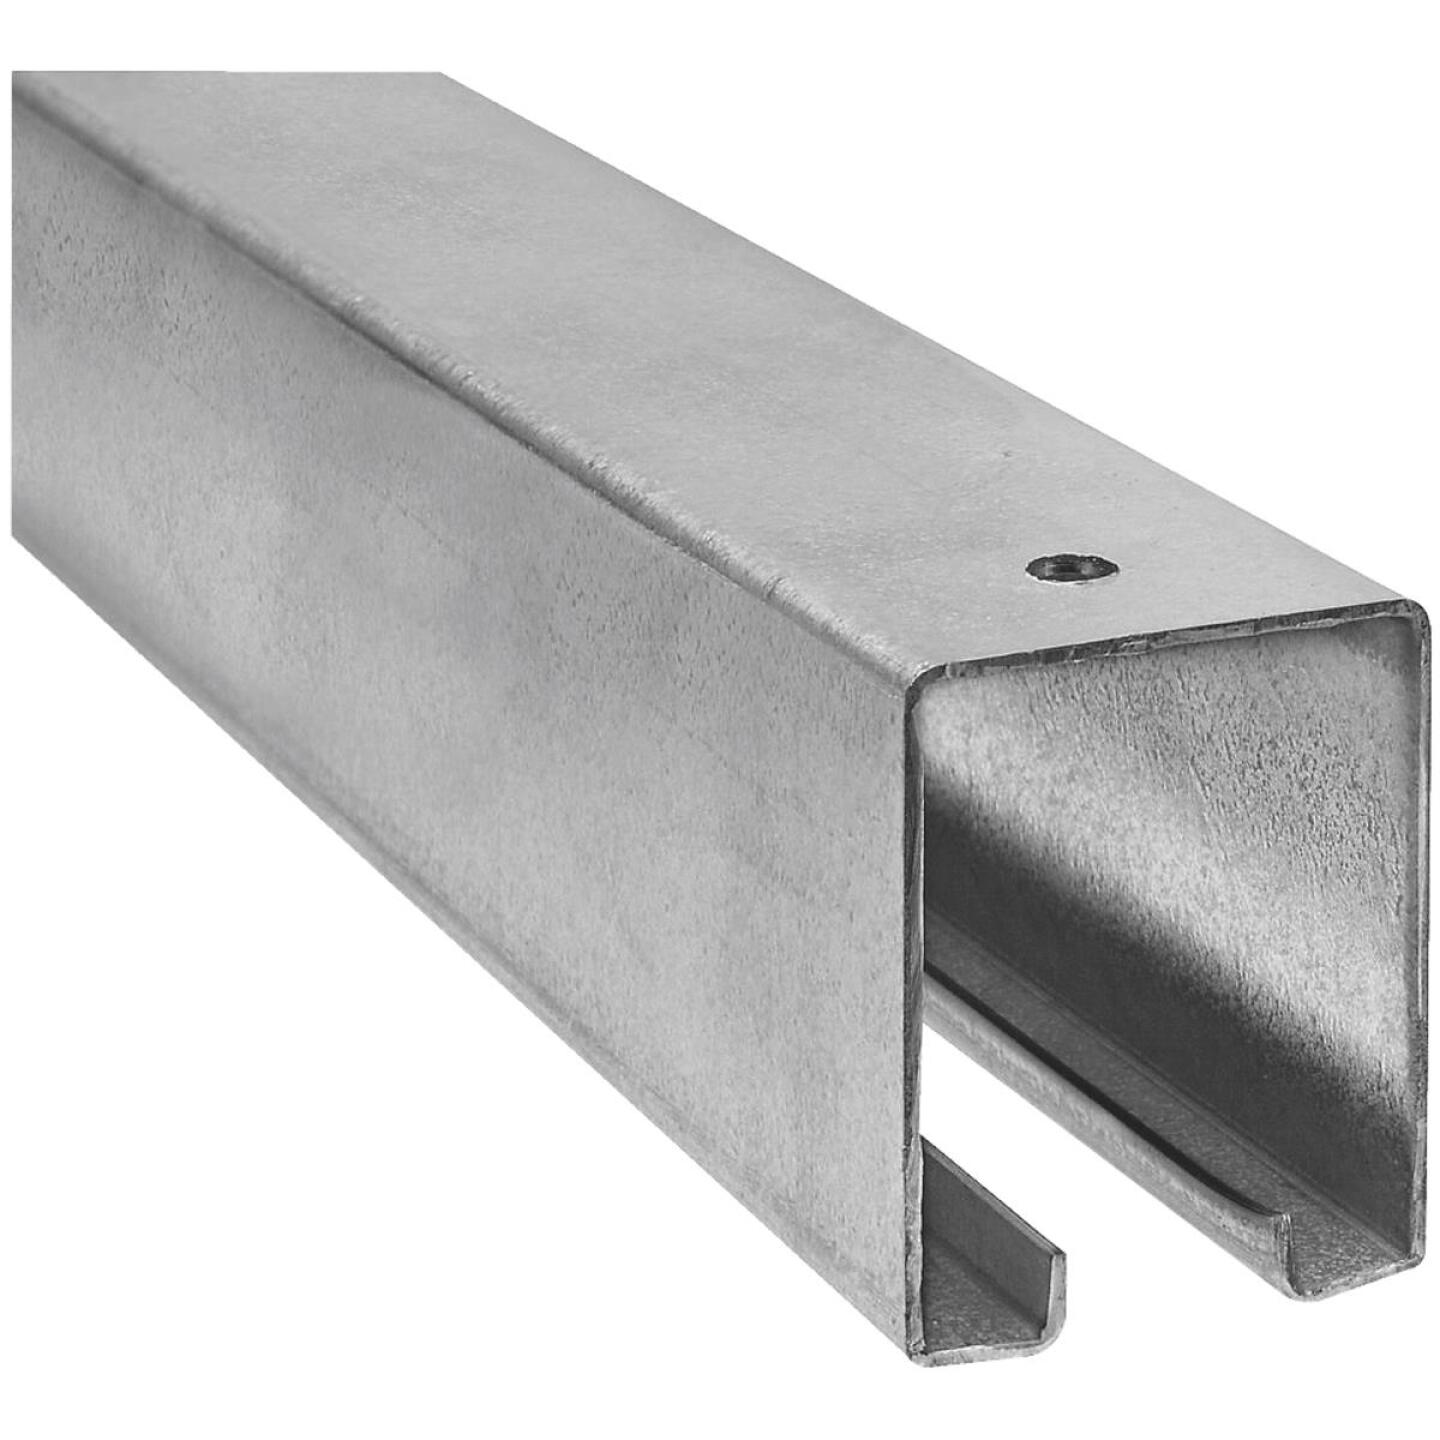 National 12 Ft. Galvanized Box Rail Barn Door Rail Image 1